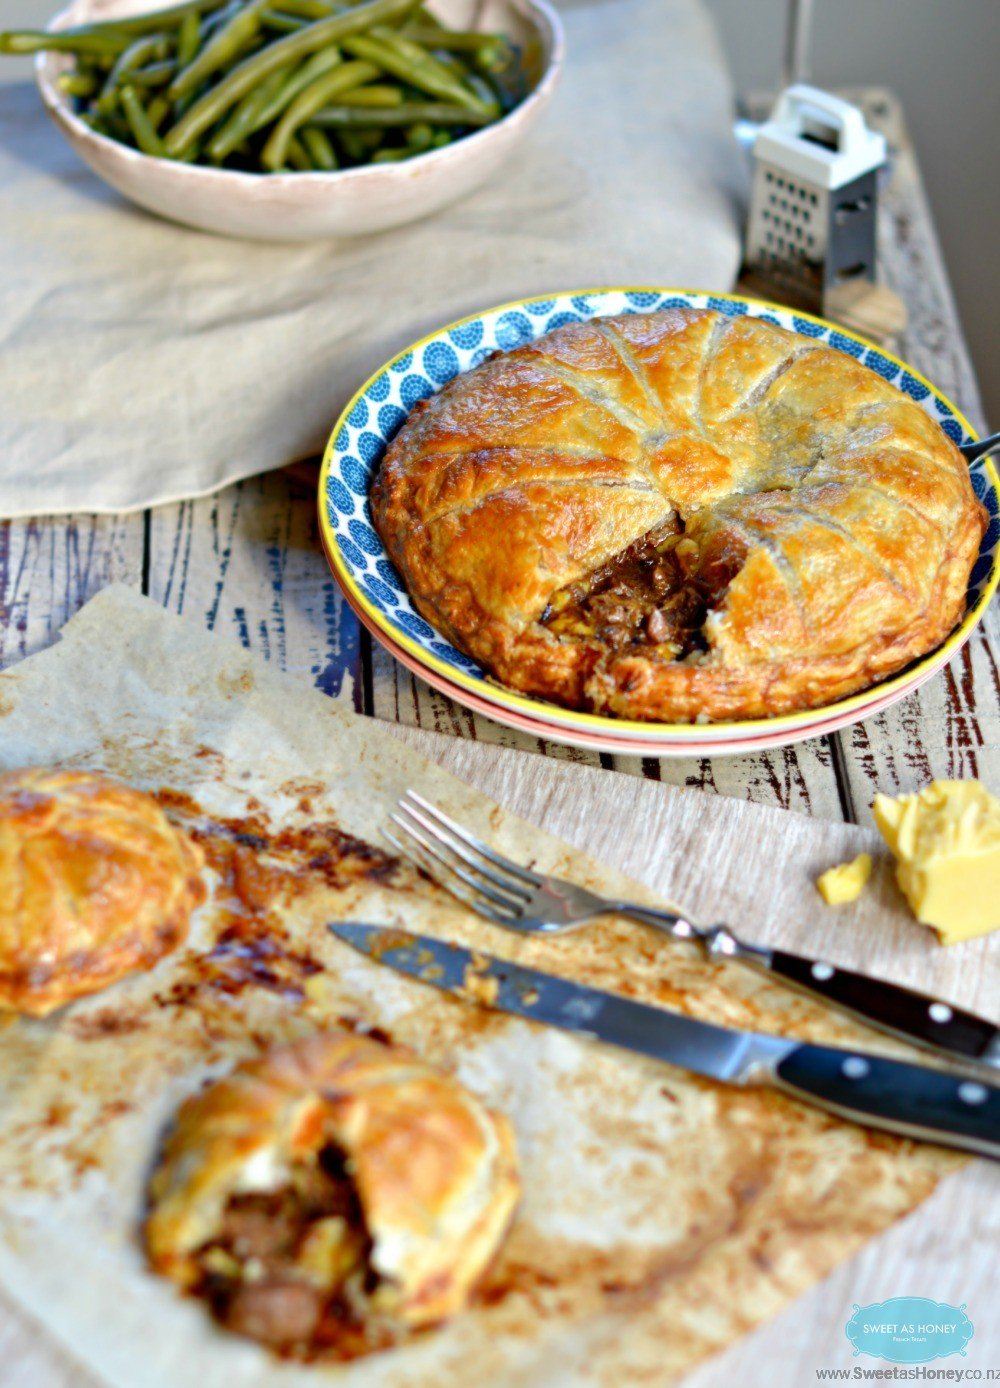 Steak Pie Easy Slow cooker recipe - Sweetashoney